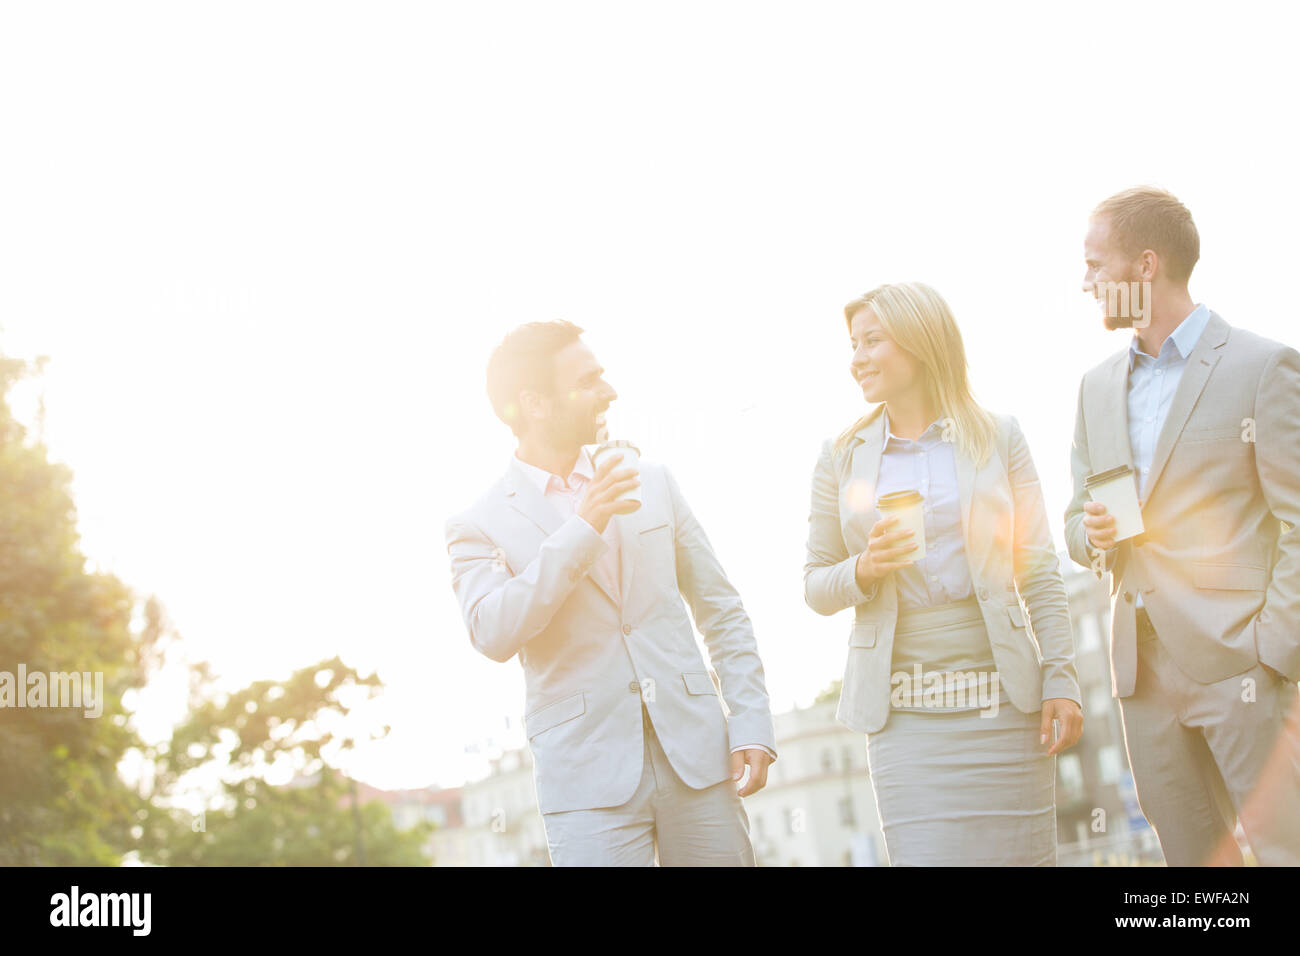 Businesspeople with disposable cups conversing against clear sky on sunny day - Stock Image